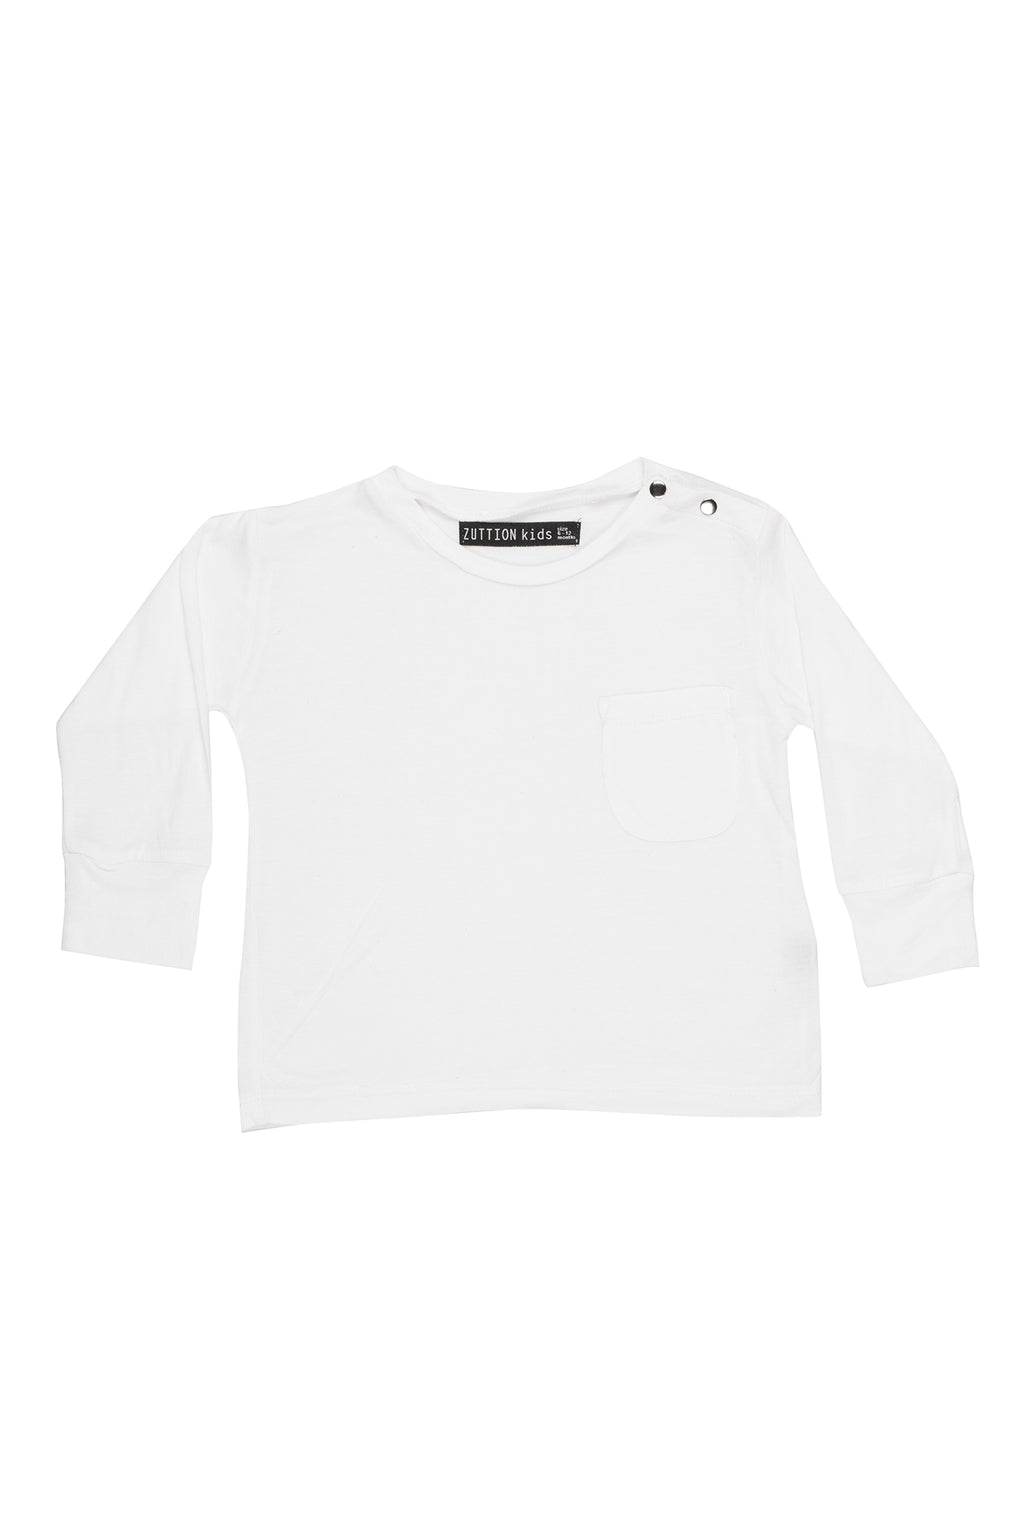 Baby Long Sleeve Tee White - Zuttion